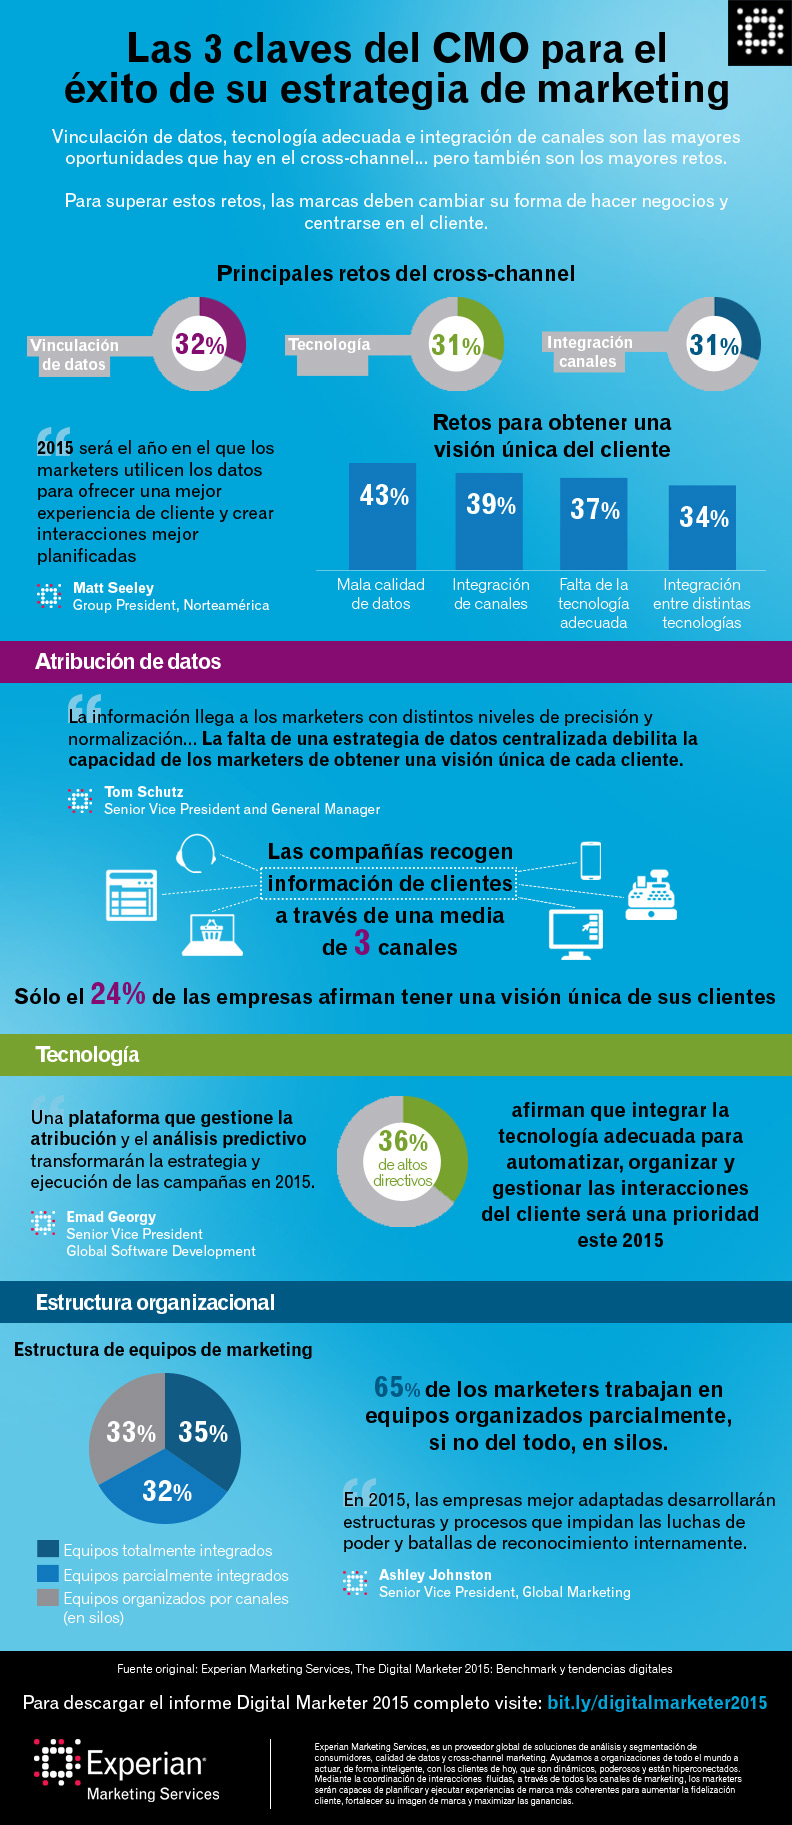 Imagen: Experian Marketing Services